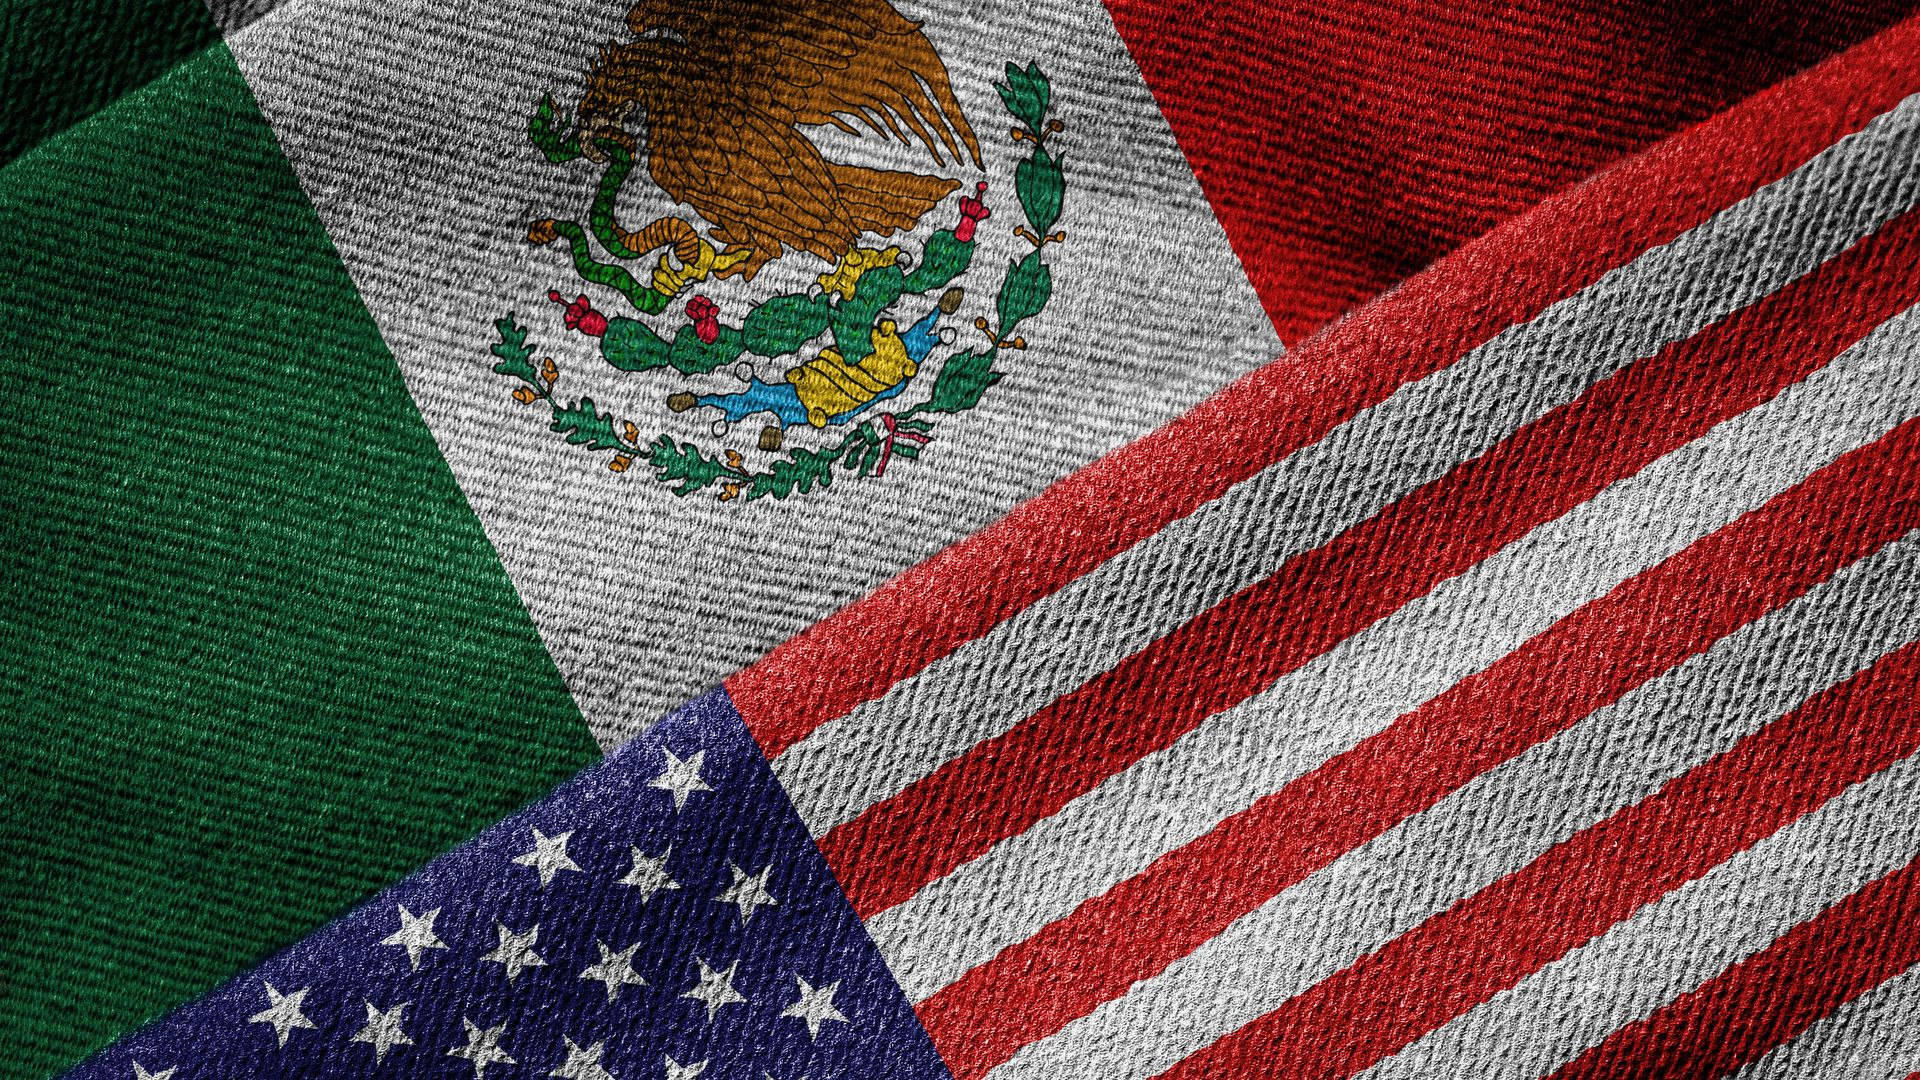 Mexican and American flags side by side